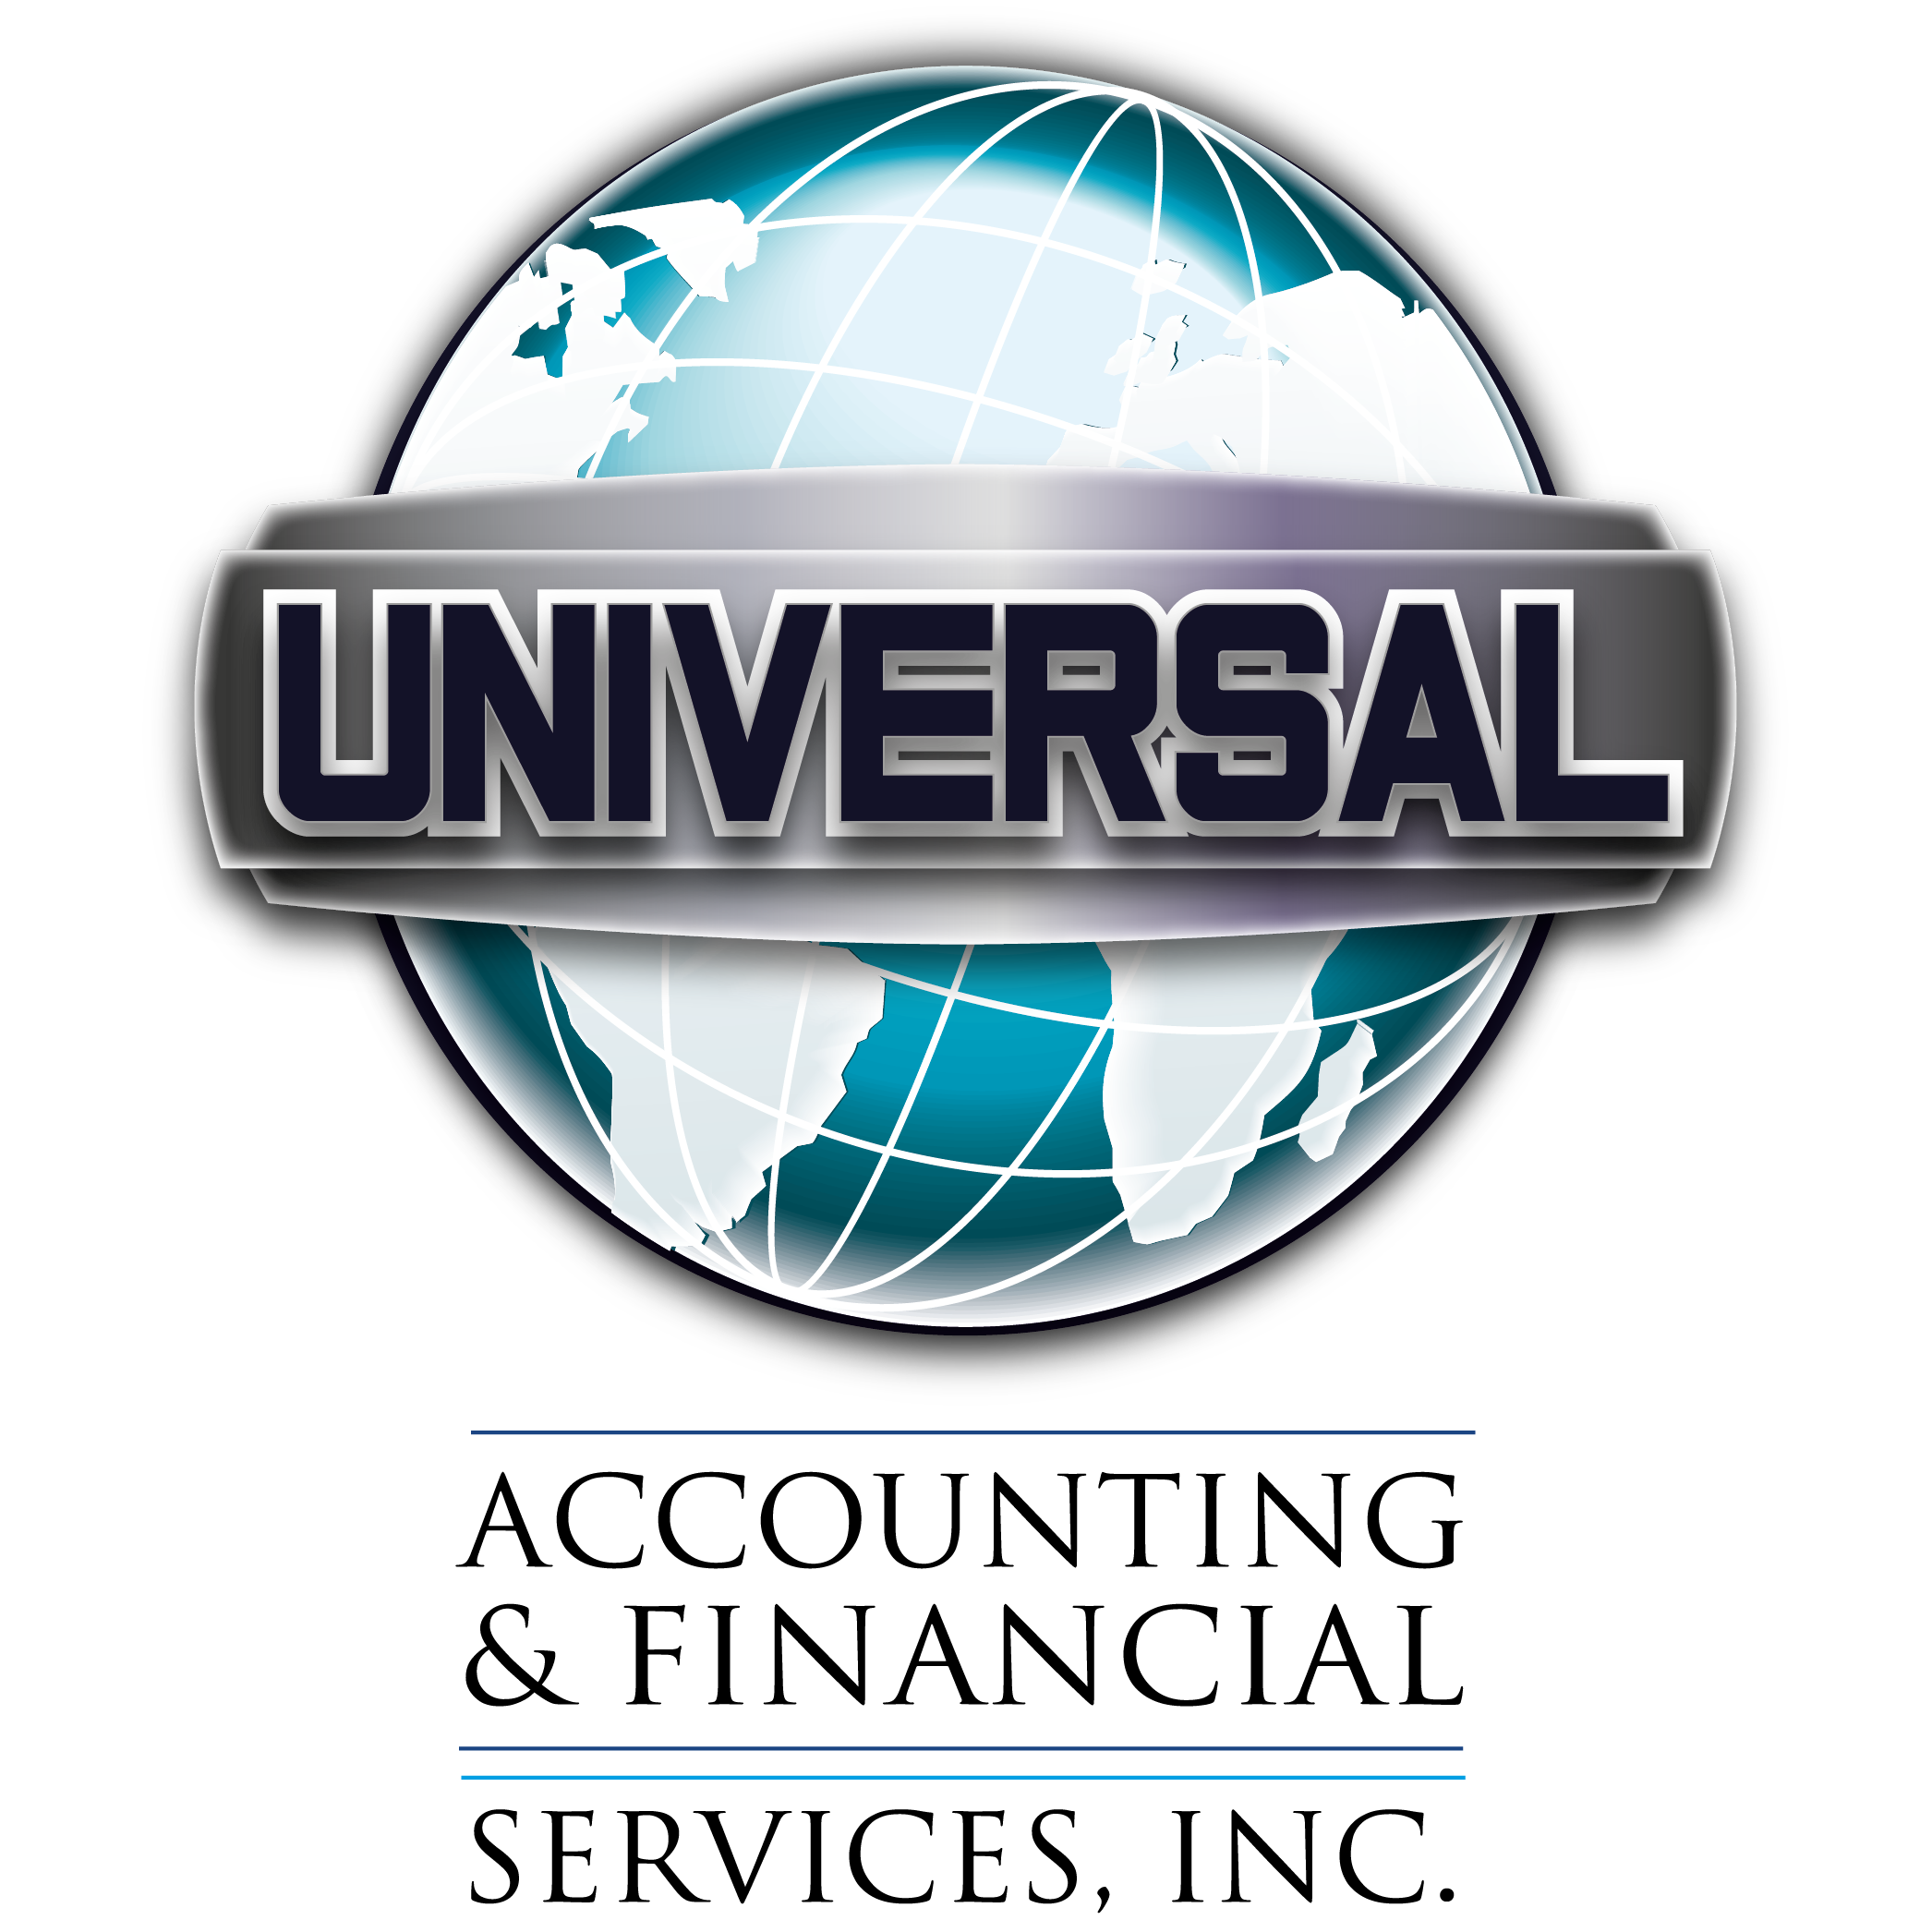 Universal Accounting Financial Services